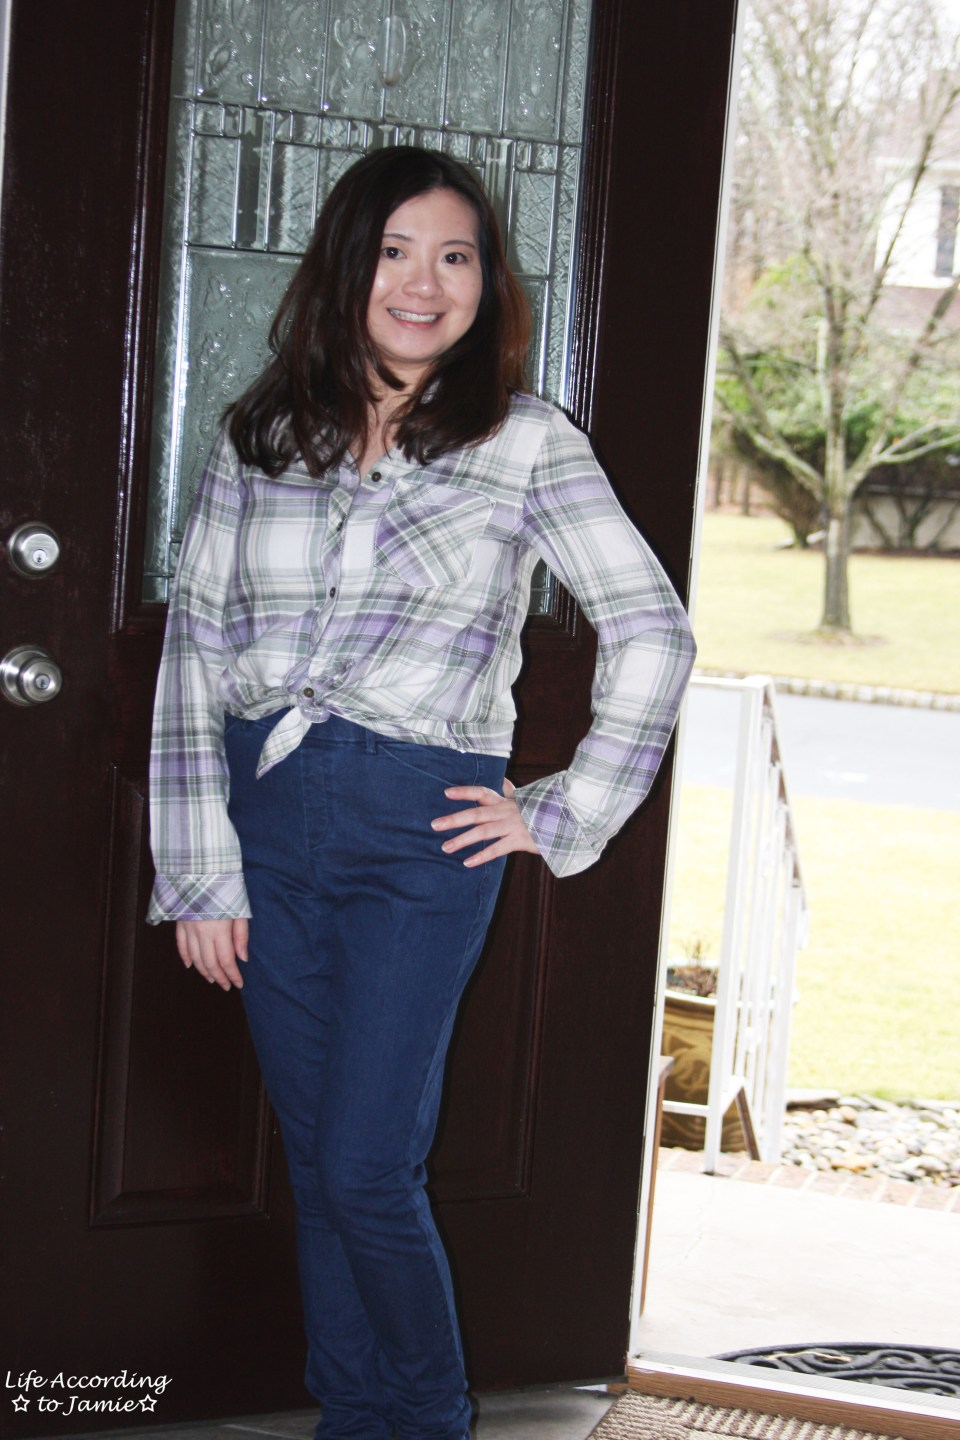 Tied Plaid Top + High Waisted Jeans 9